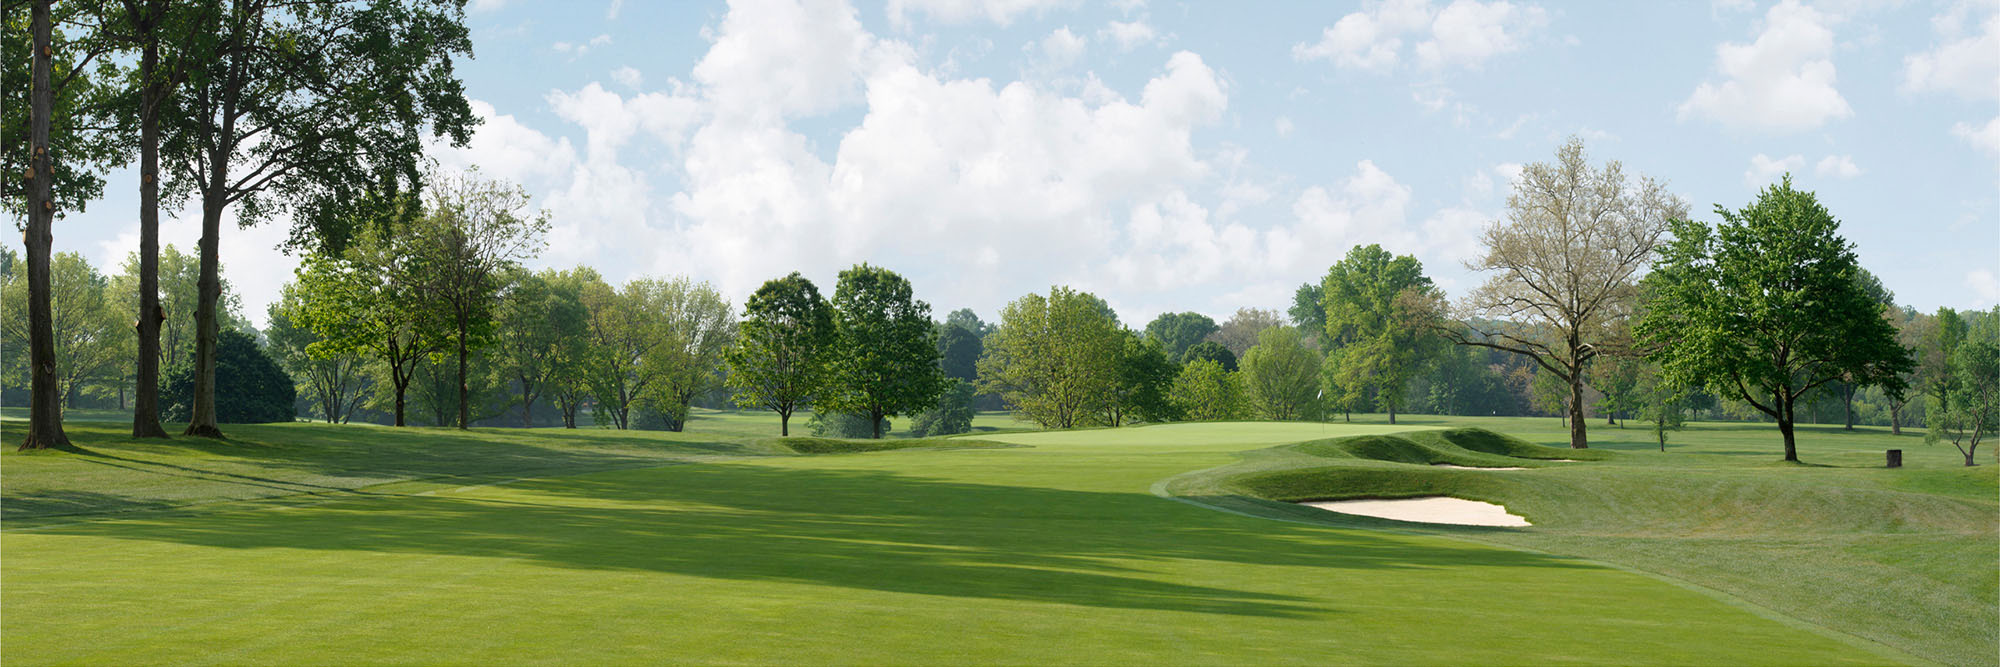 Golf Course Image - Pittsburgh Field Club No. 15